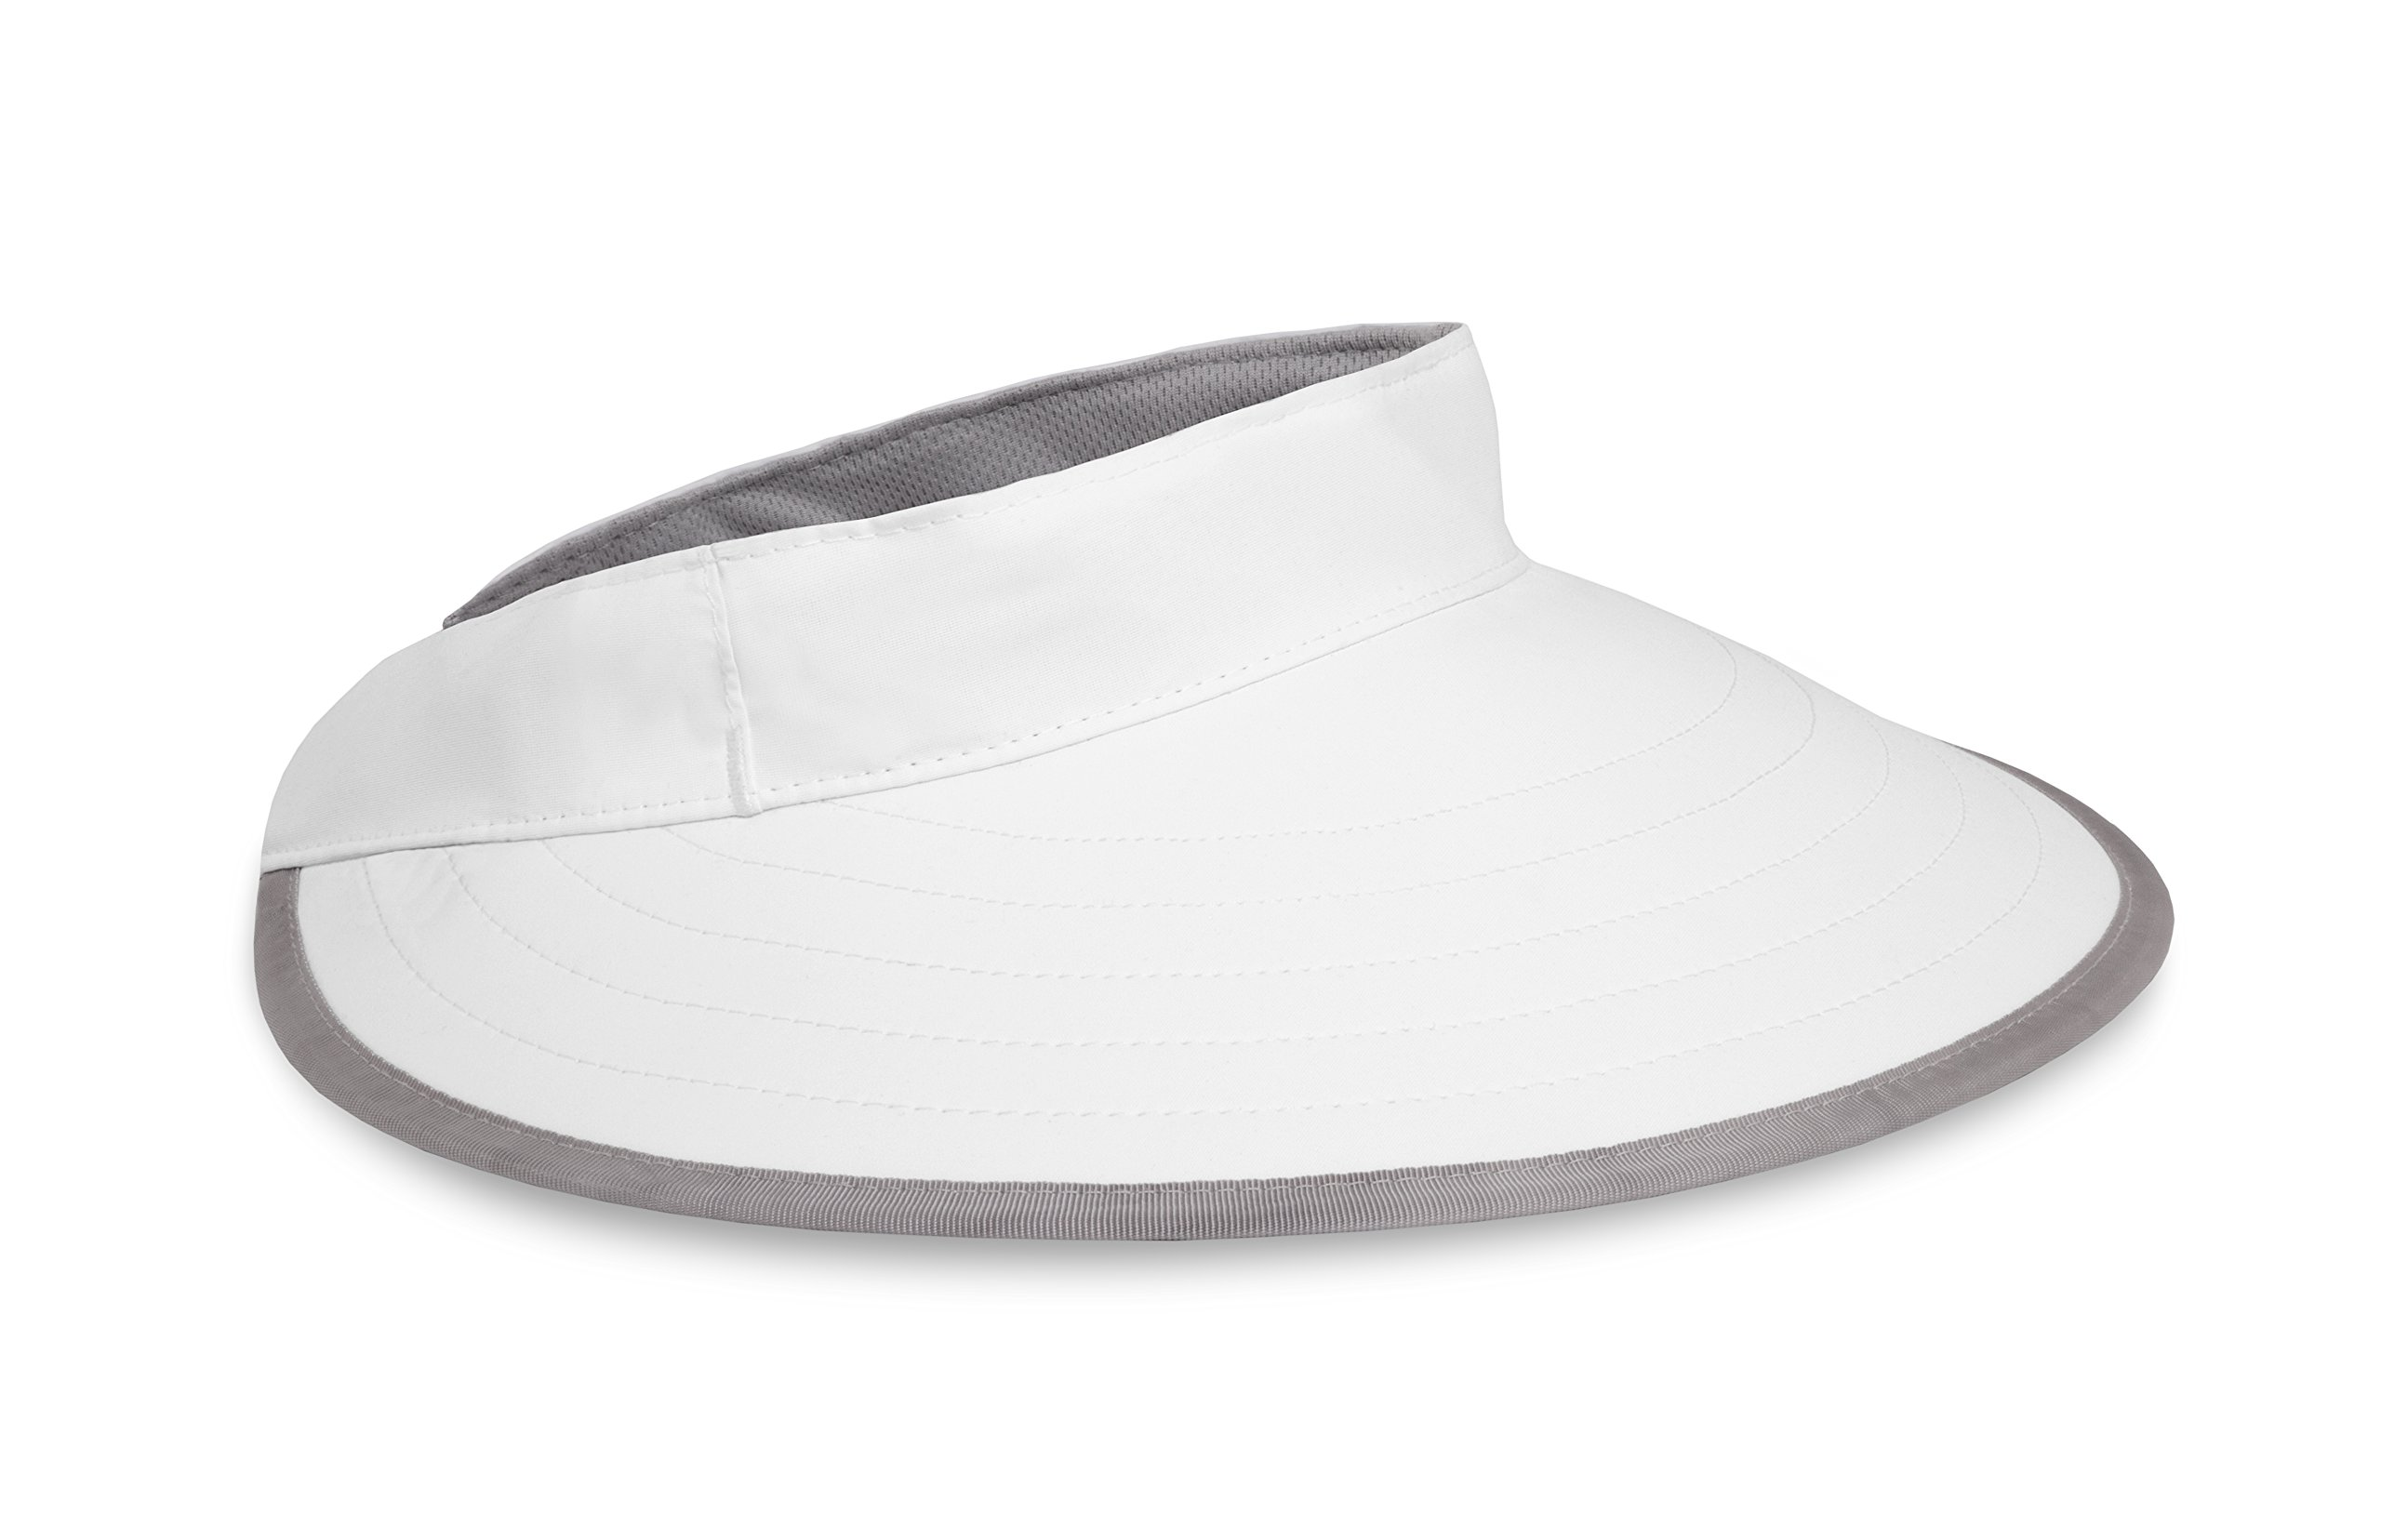 Sunday Afternoons Sport Visor, White, One Size by Sunday Afternoons